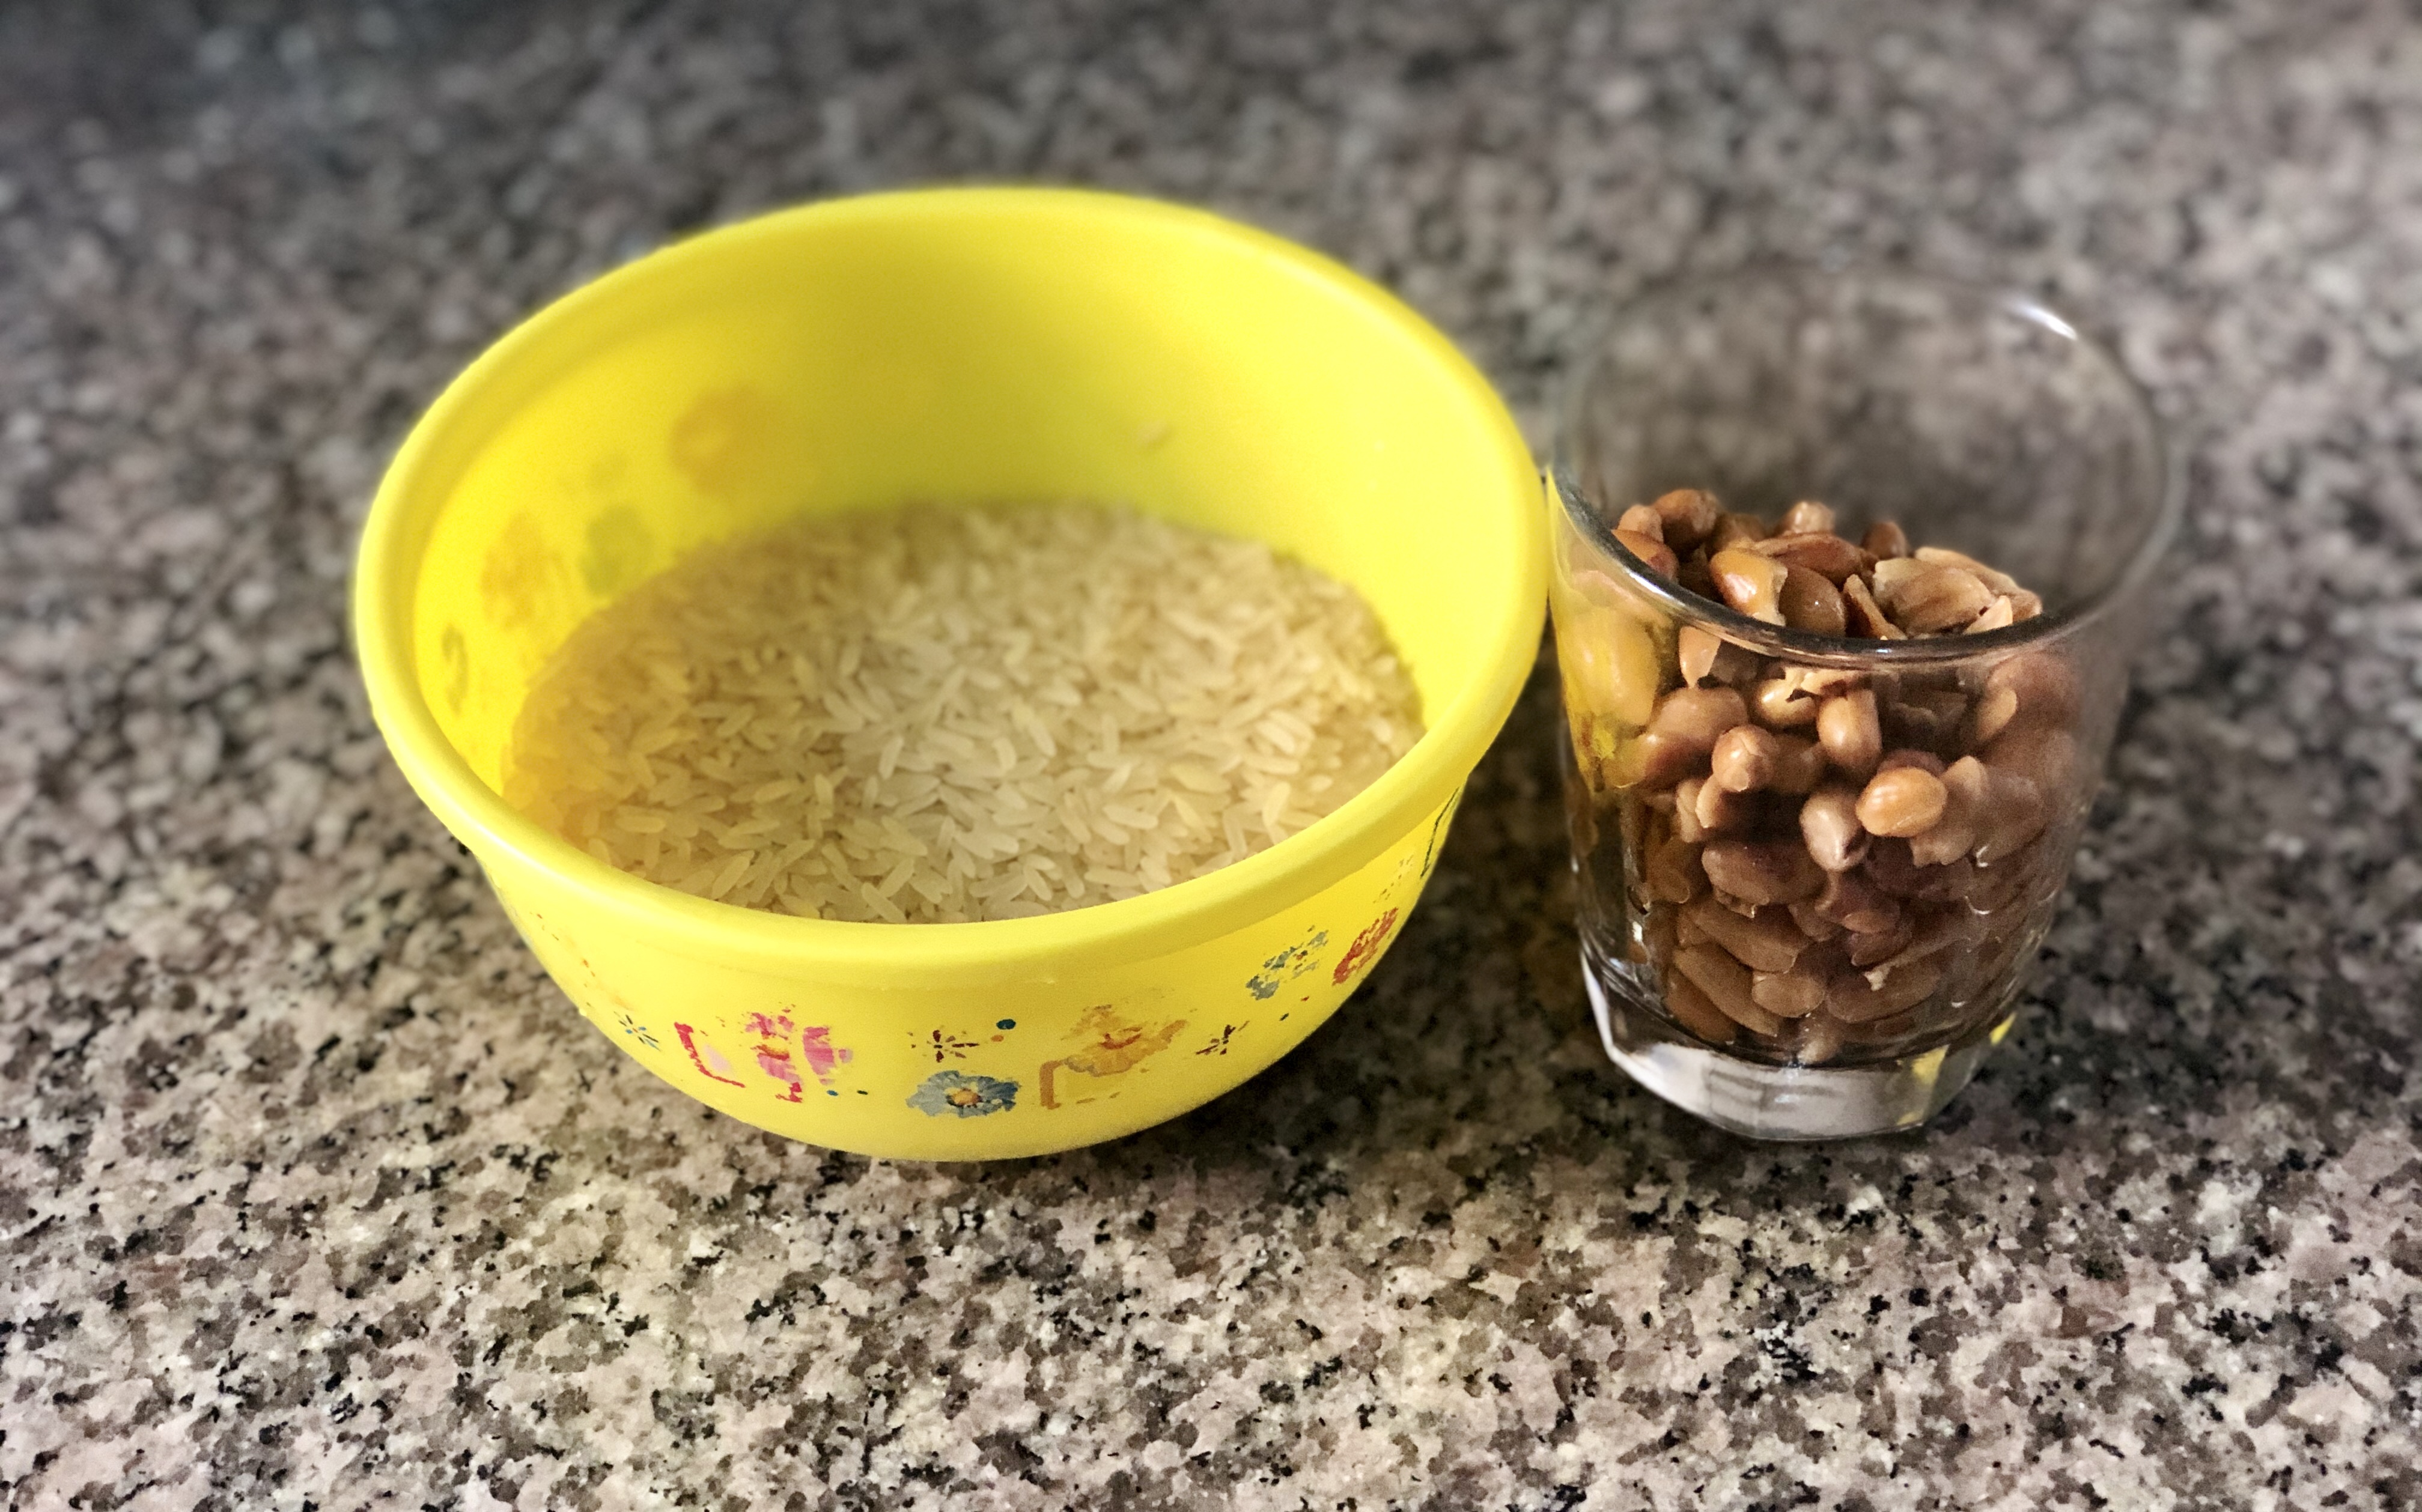 A cup of rice and a cup of roasted peanut